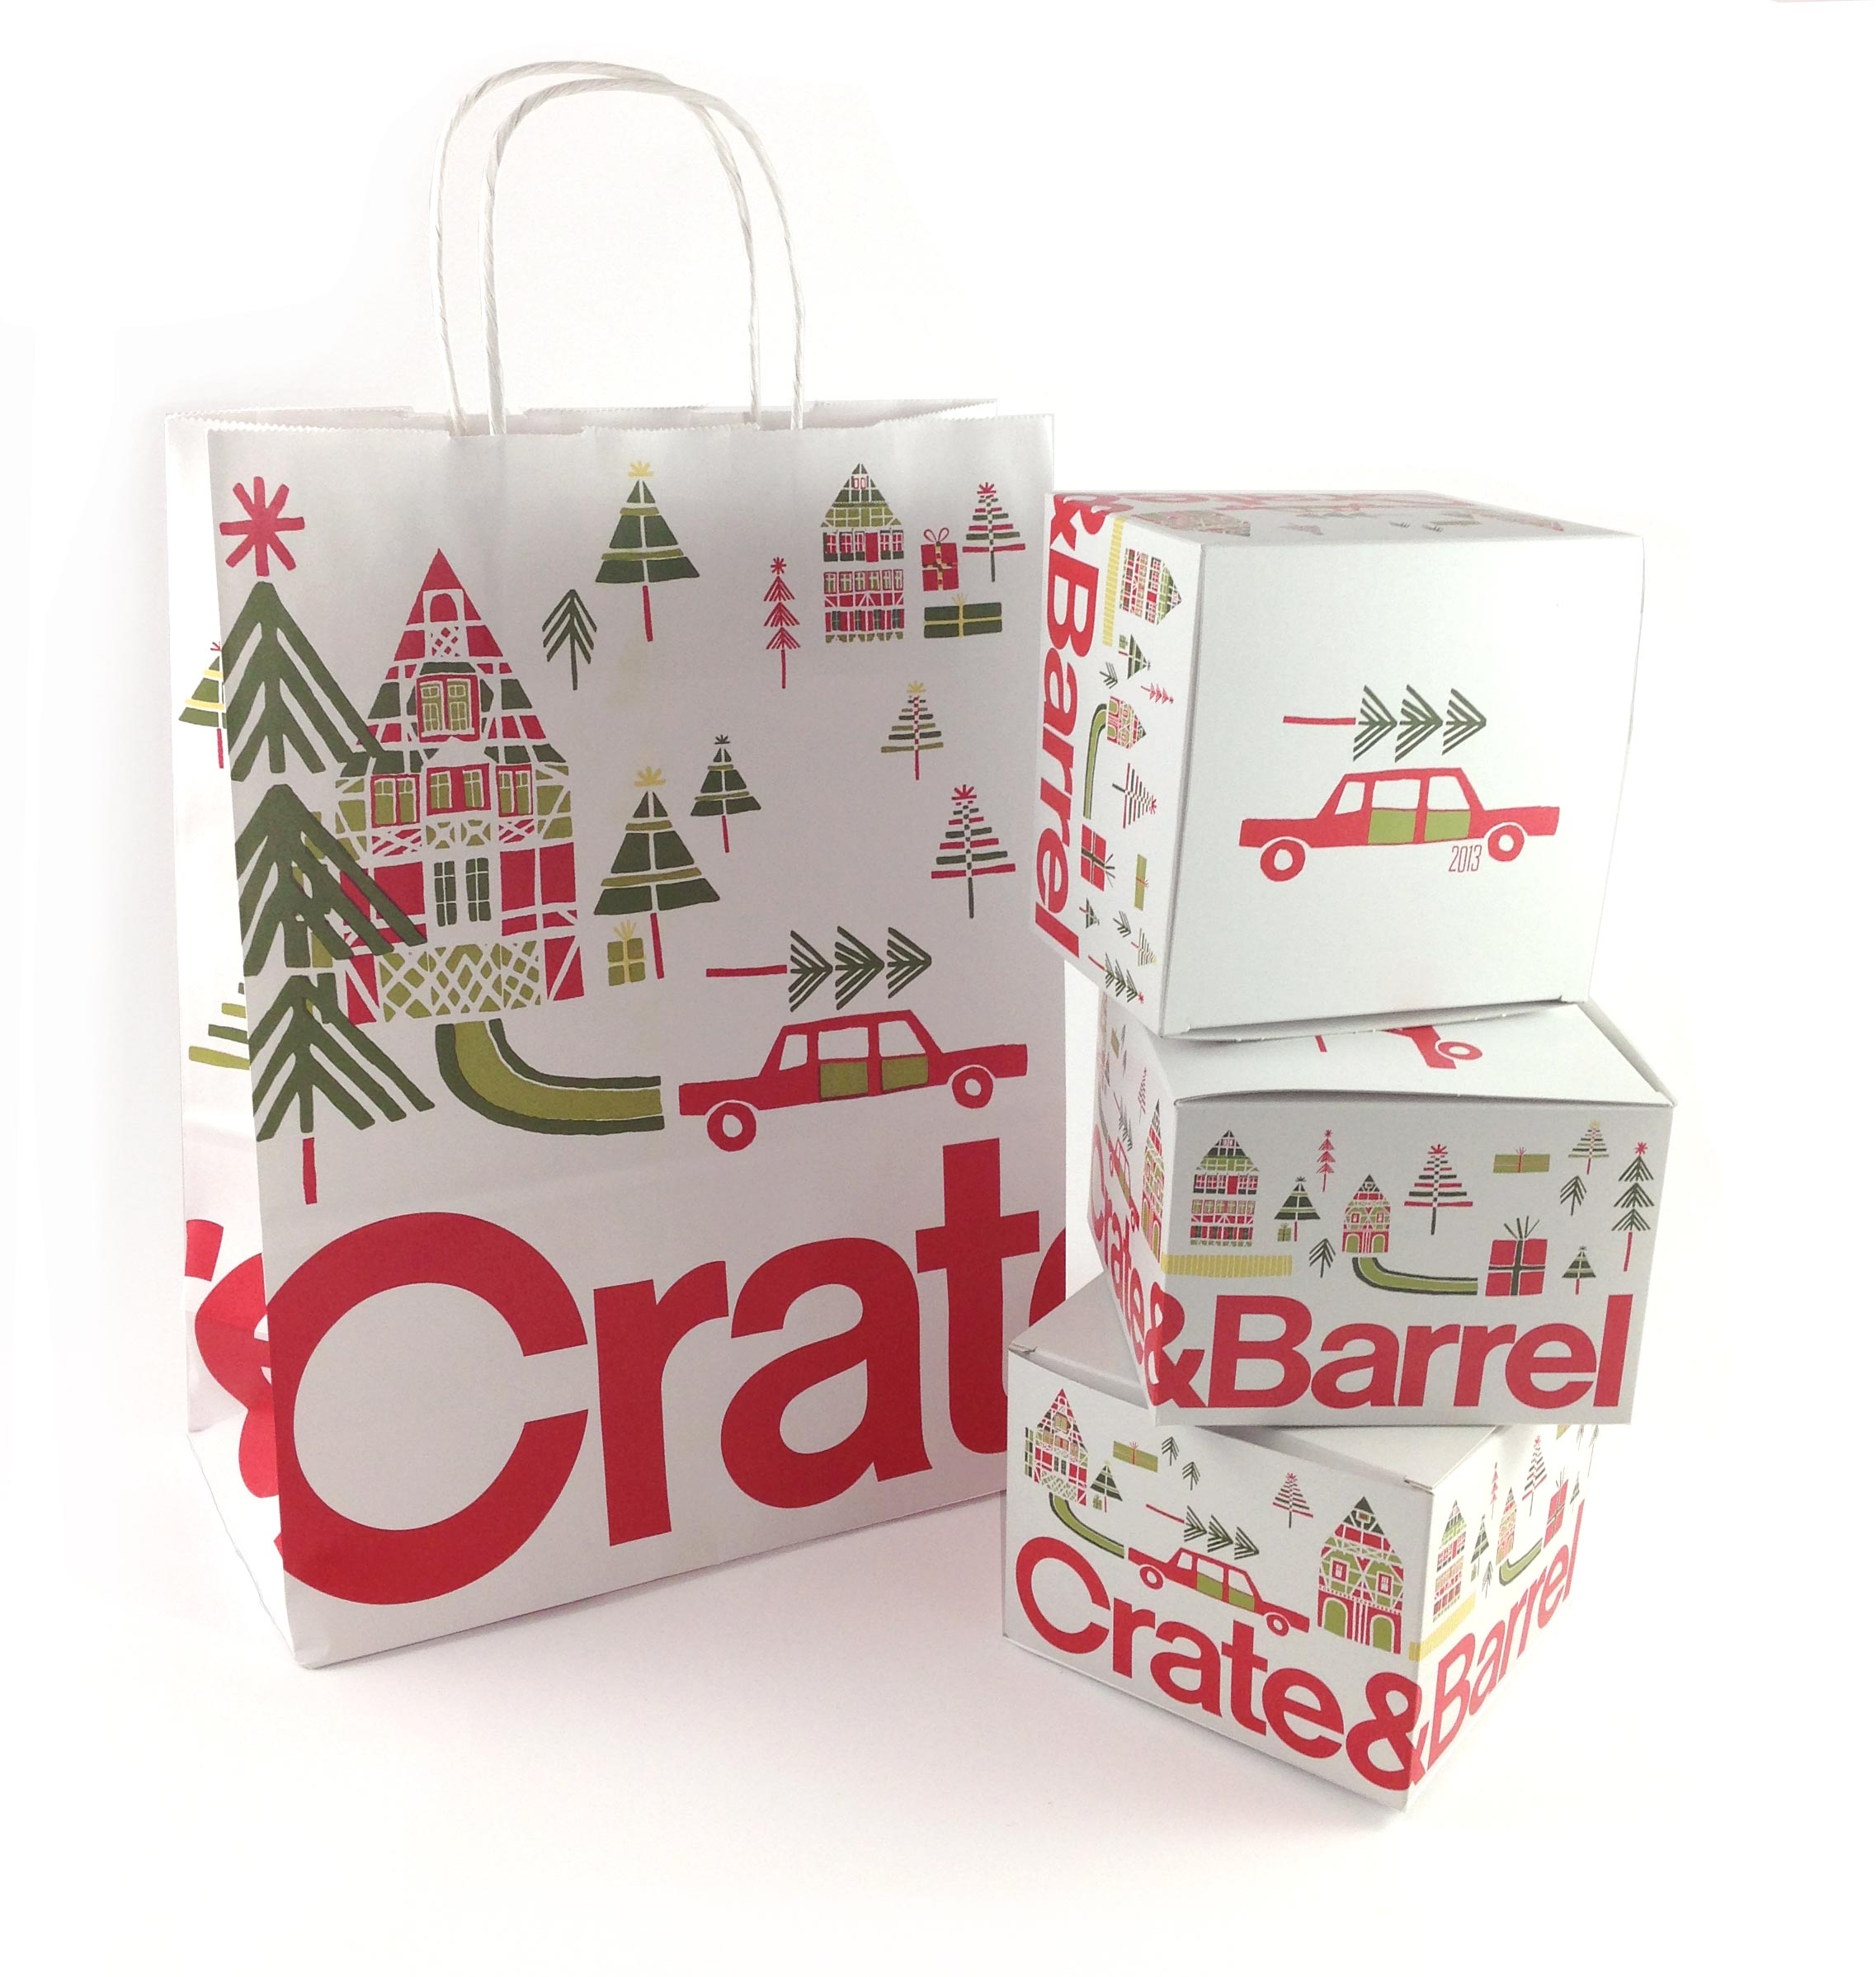 Christmas Crate And Barrel.Crate And Barrel The Treelot Julia Rothman